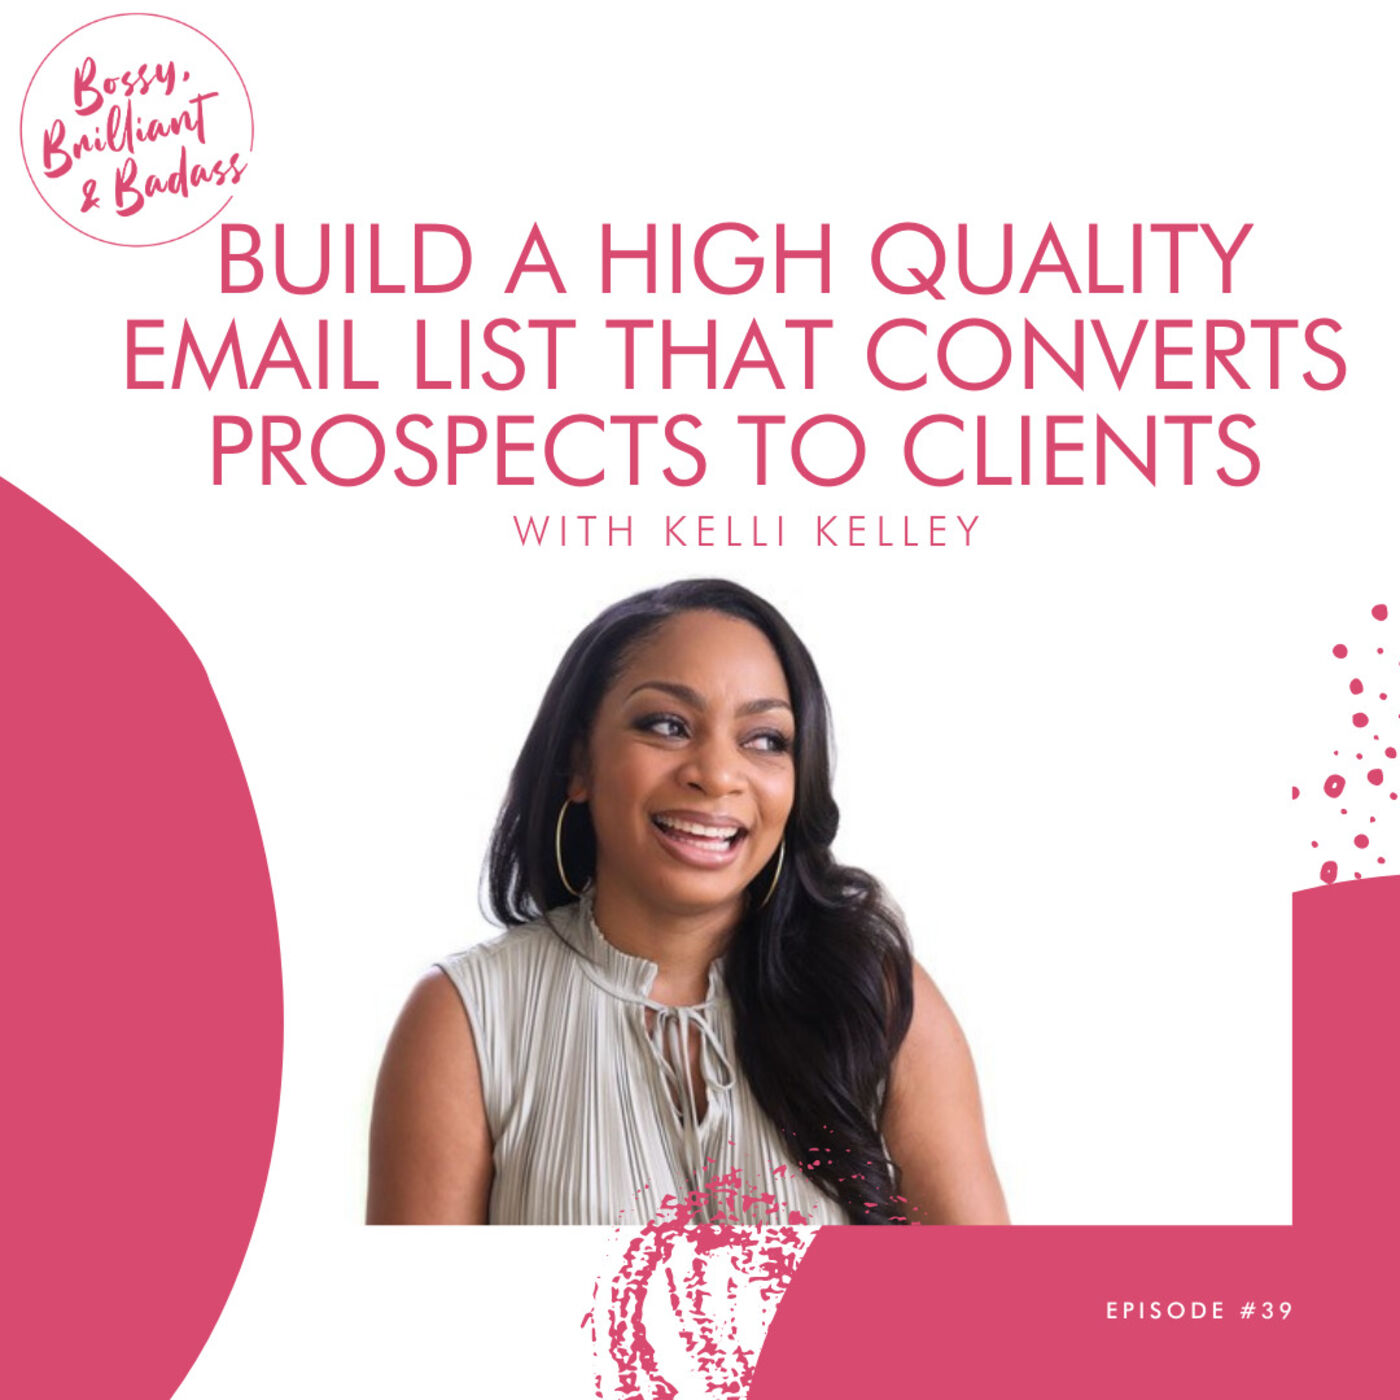 How to Build a High Quality Email List that Converts Prospects to Customers (with Kelli Kelley)